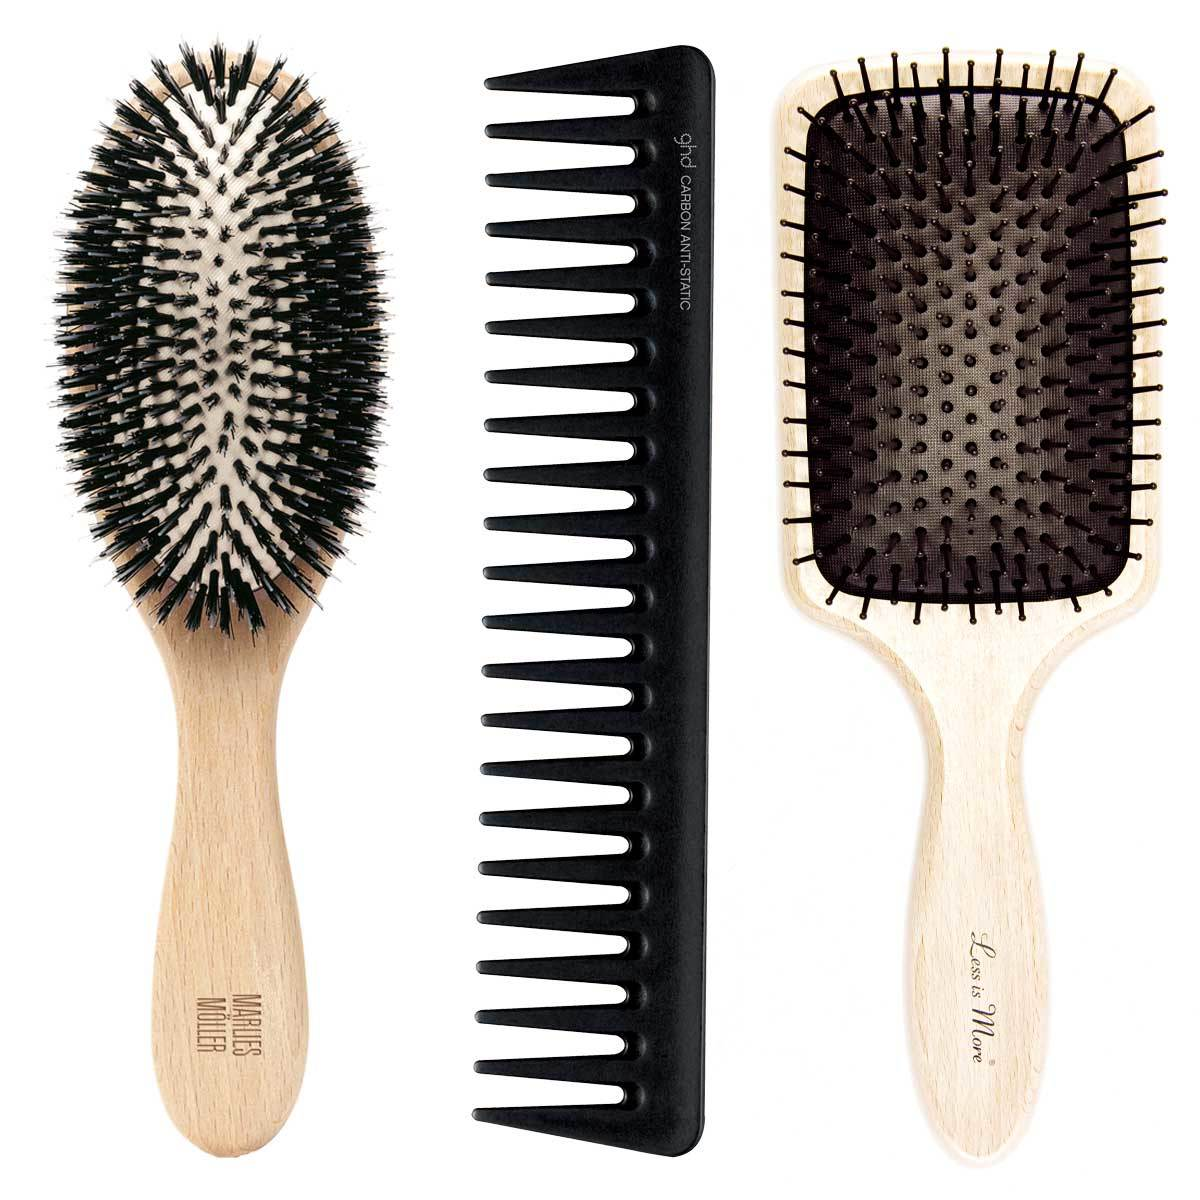 Cepillo Allround Brush, Marlies Möller (57 euros); Peine desenredante de GHD (13 euros); Paddle Brush Beech White Nylon, Less is More (40 euros) con madera de haya certificada.